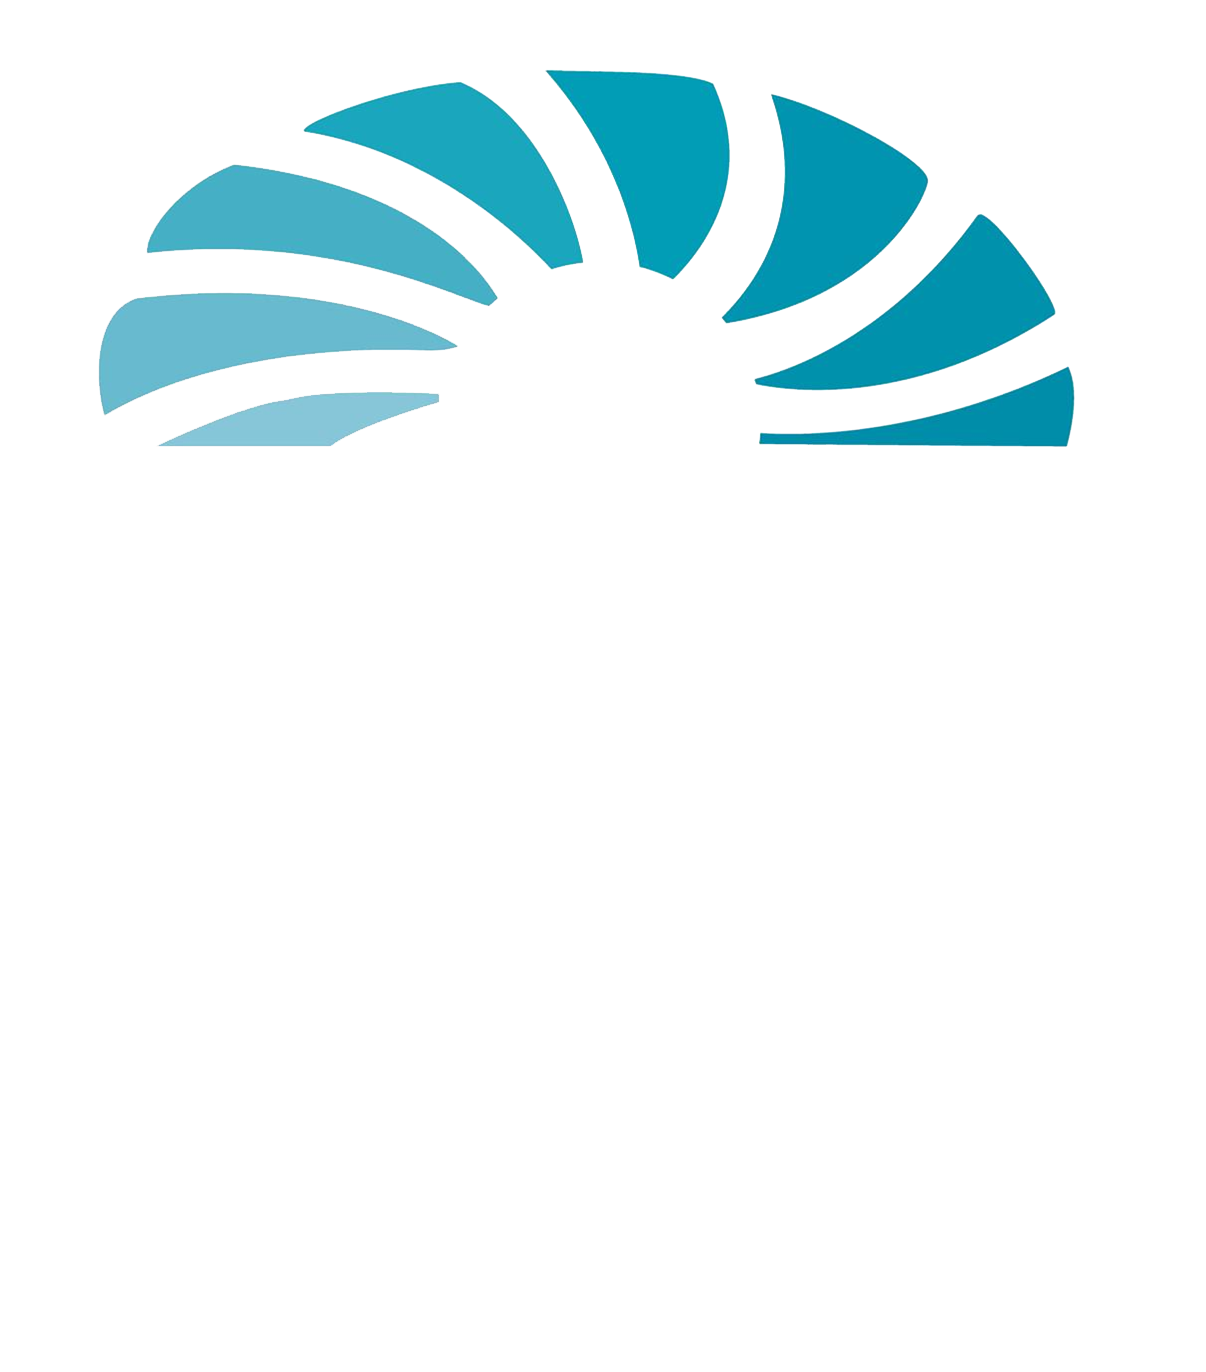 VIP Community Services